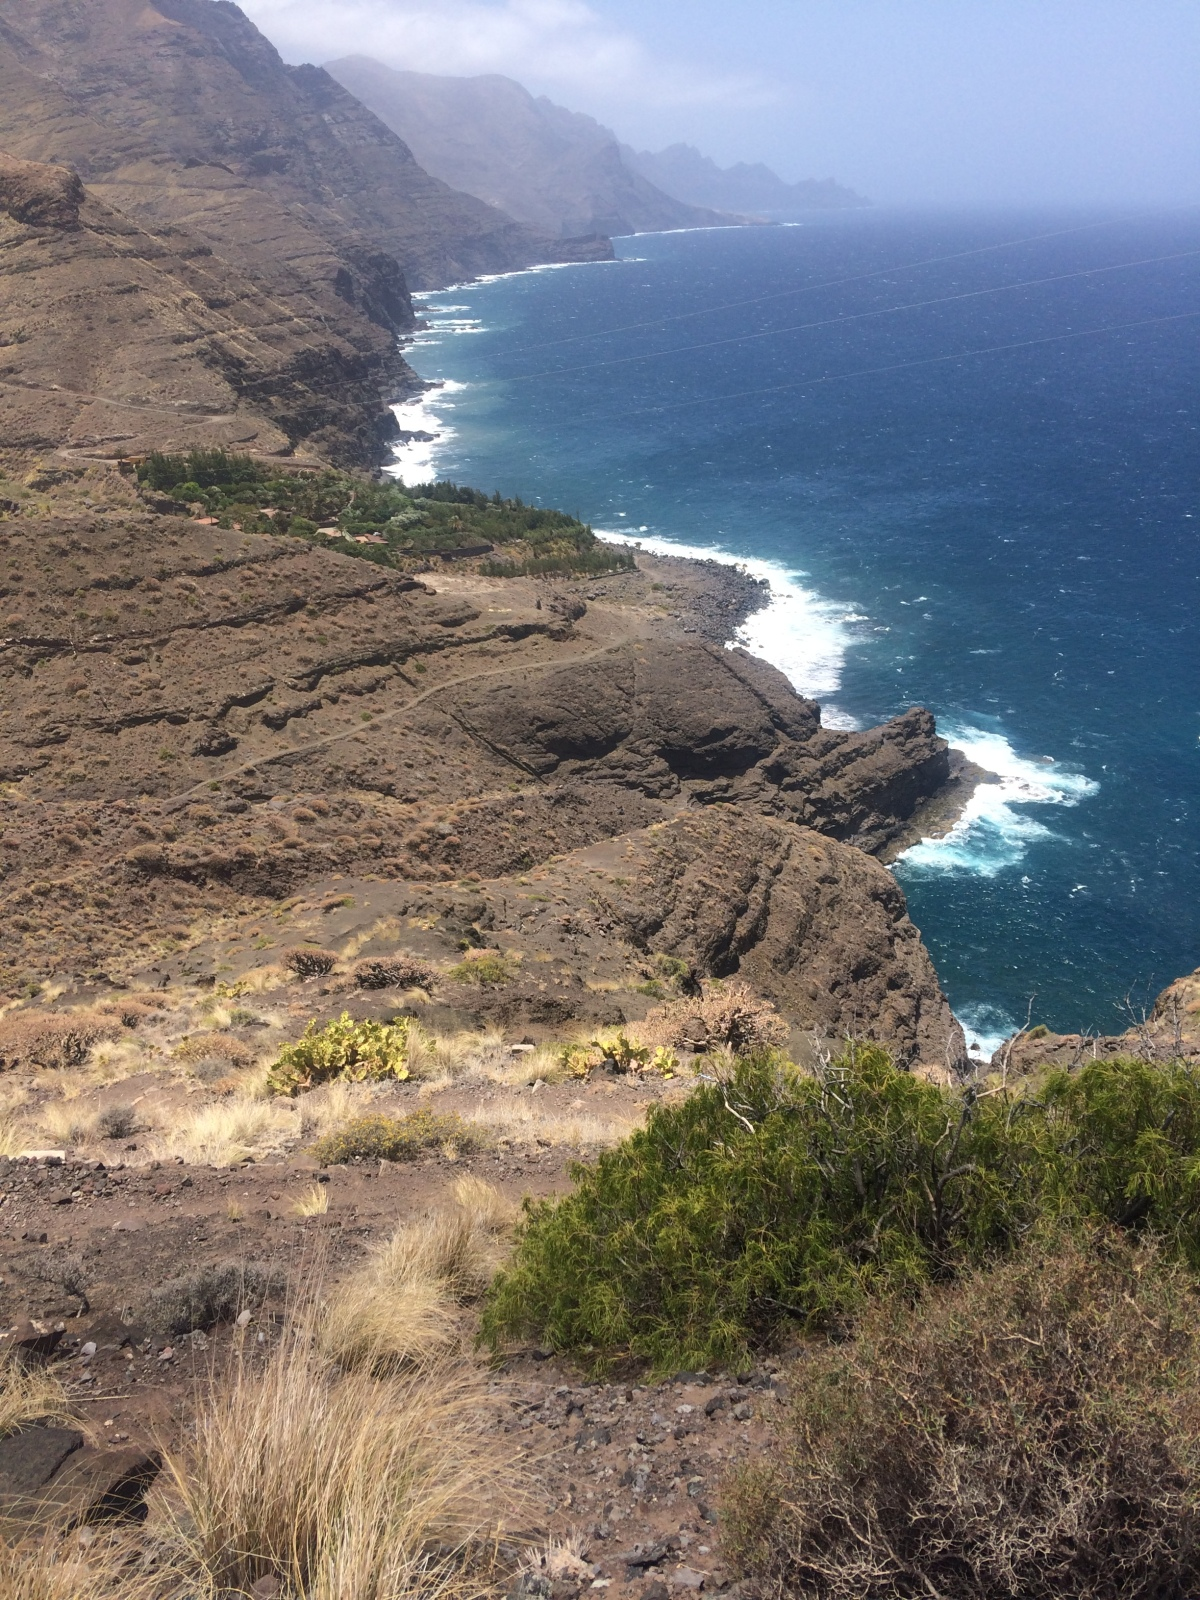 Wild & beautiful Agaete: a hidden gem in the Canary Islands